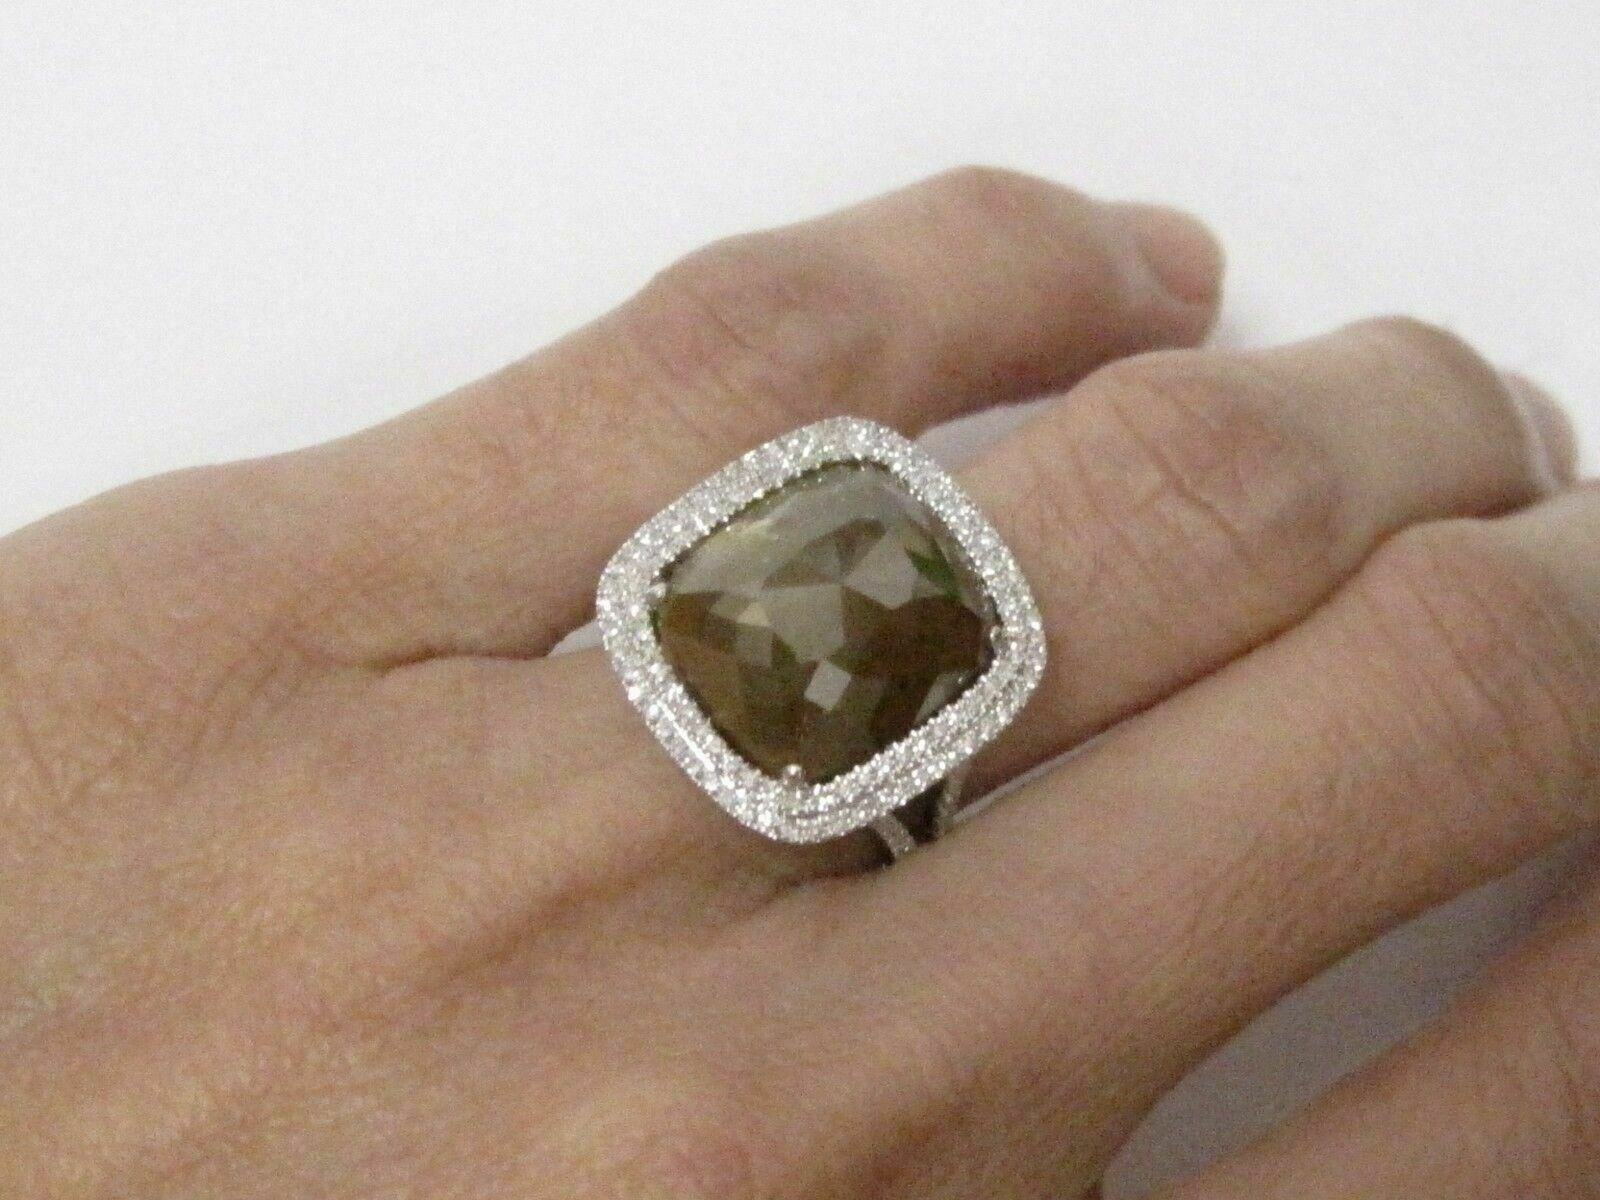 7.83 TCW Natural Solitaire Cushion Facet Colored Diamond Ring 14k W/G Size 6.5